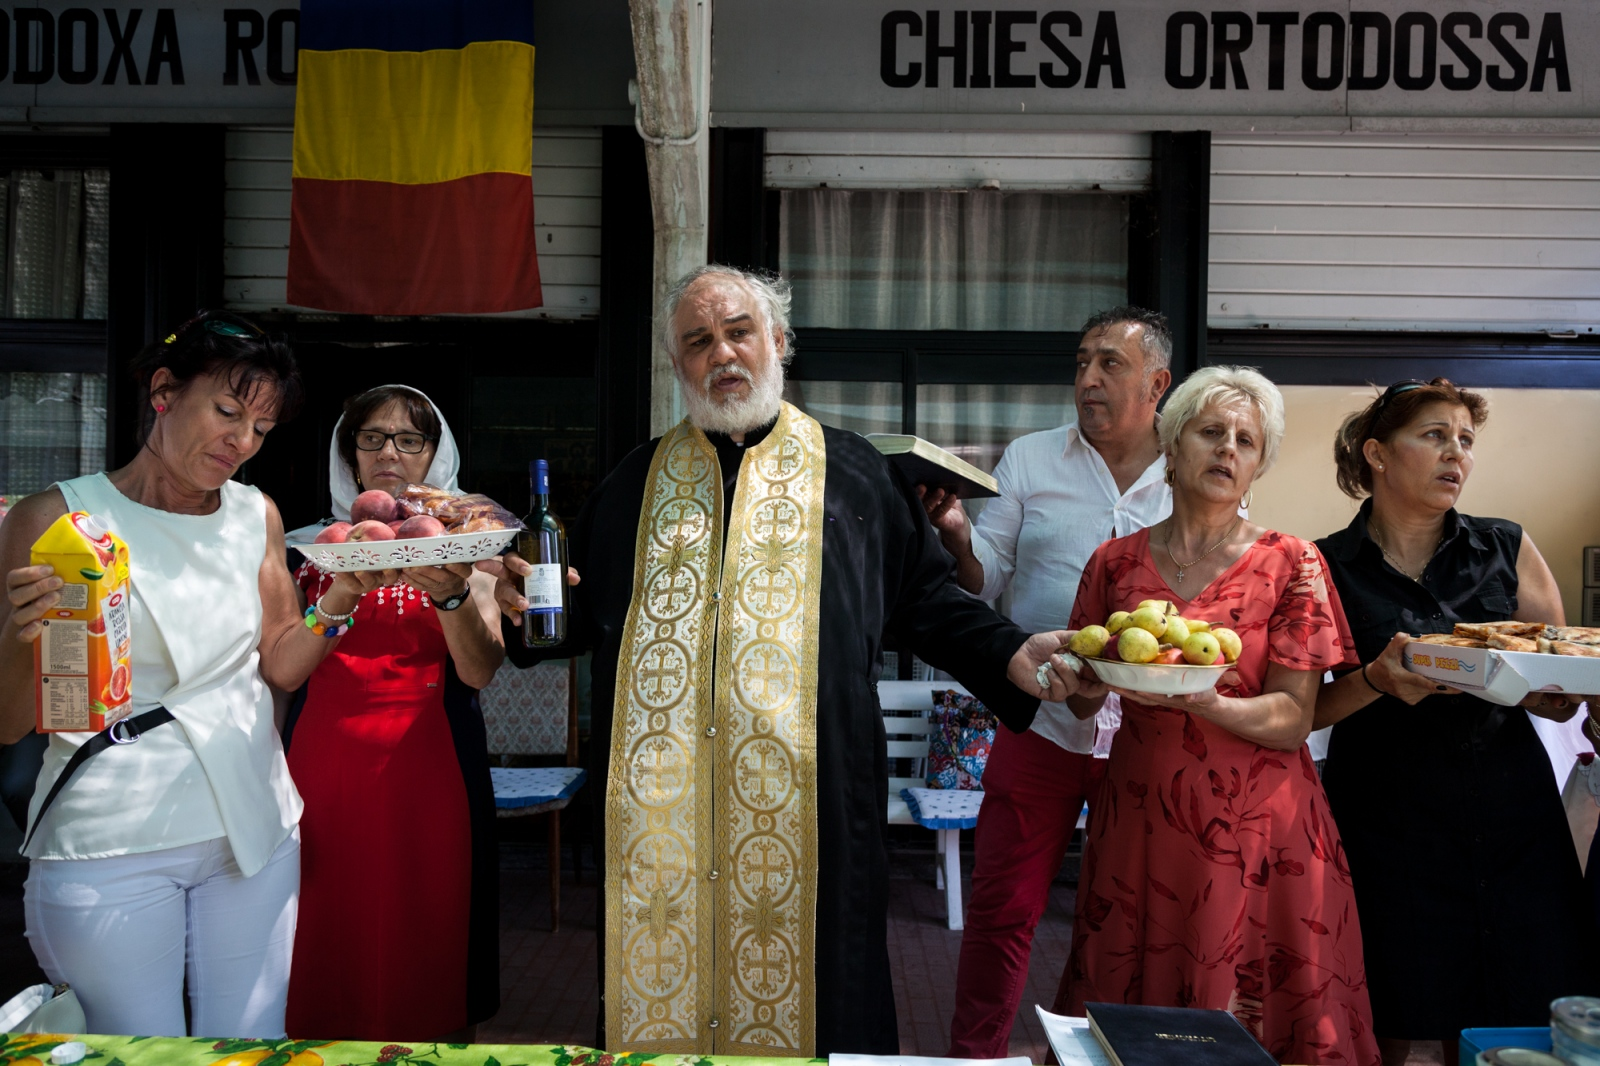 July 30, 2017 - Sunday celebration at the Romanian Orthodox Church in Tor Sapienza, located in a complex of public housing in Tor Sapienza, a working class neighboohood in southeast Rome. Padre Stefano is blessing the food that church members brought.